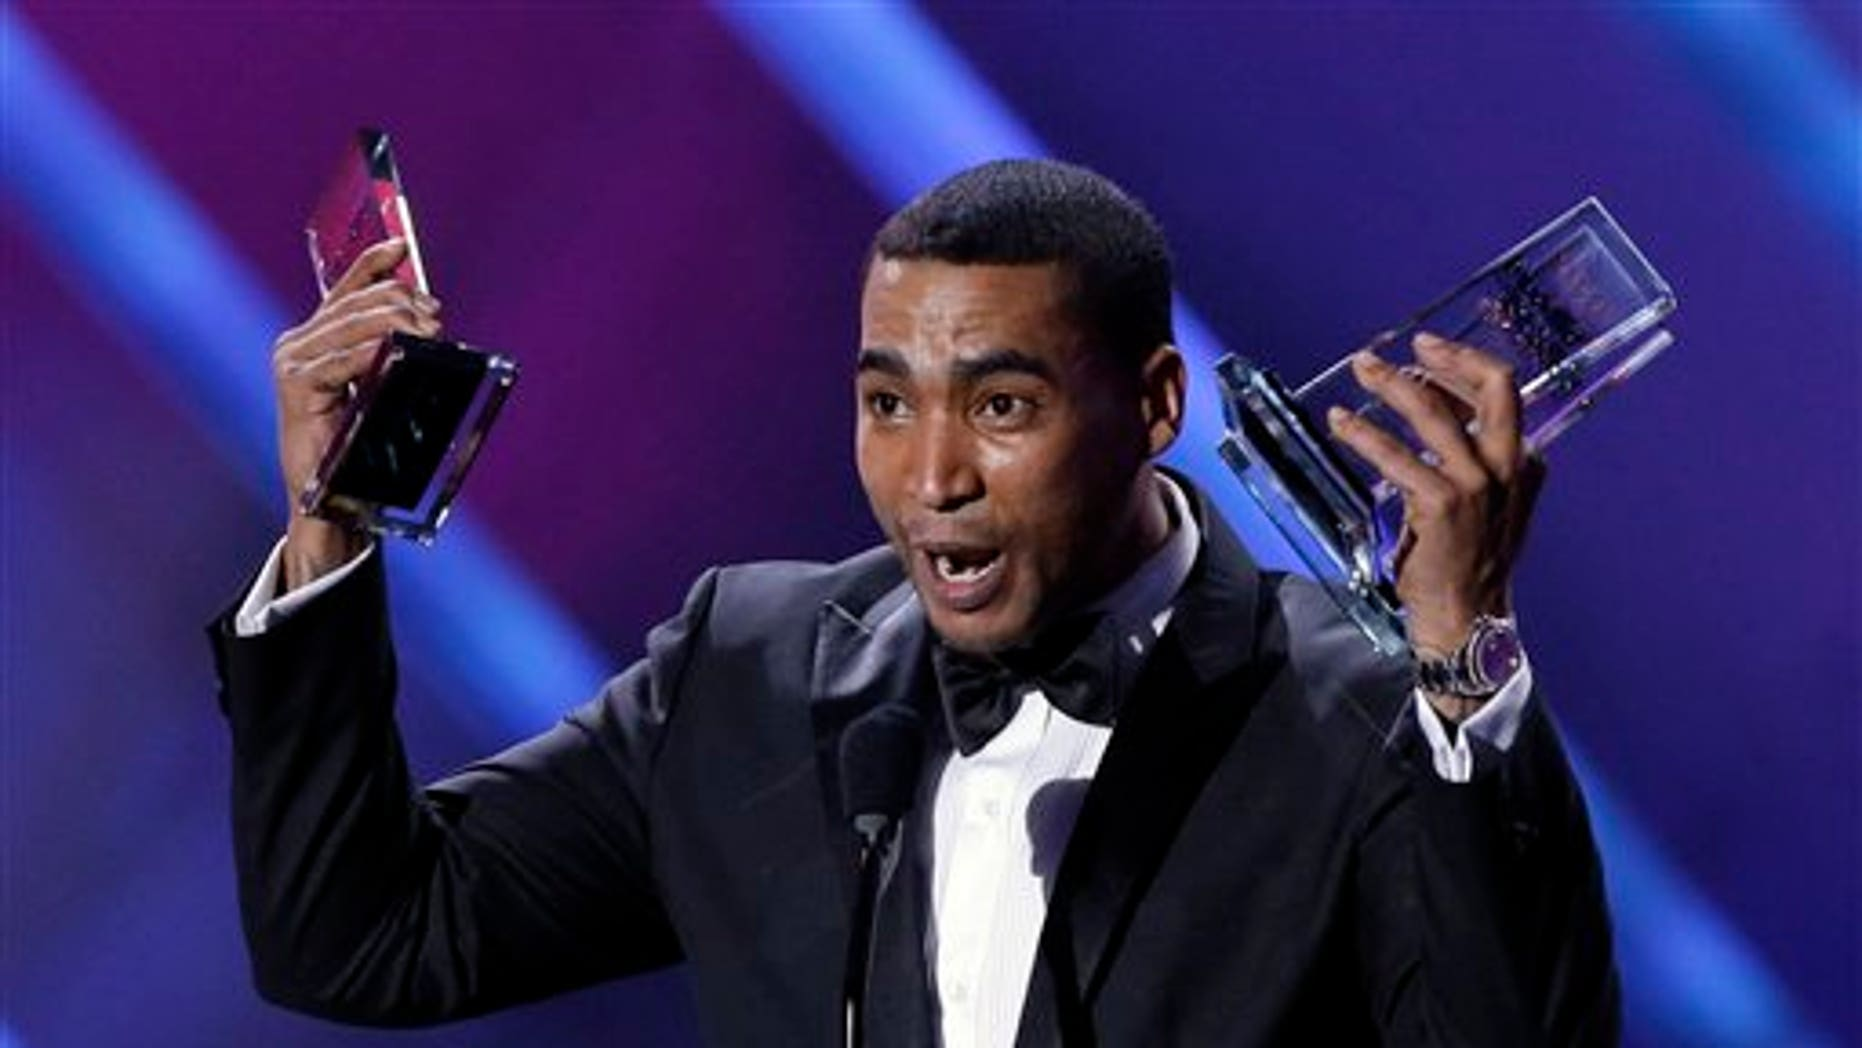 Don Omar receives his tenth award at the Latin Billboard Awards in Coral Gables, Fla, on April 25, 2013.